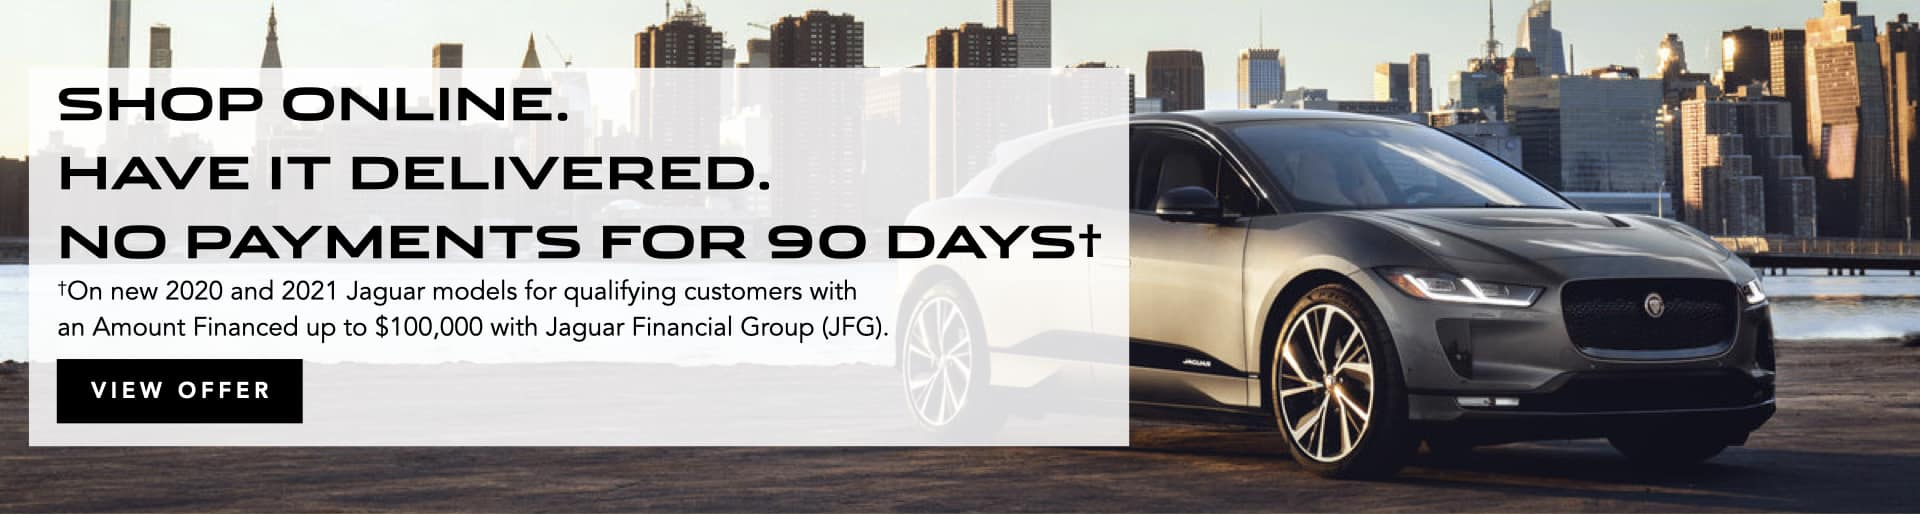 Shop online at Jaguar Austin, and we will deliver paperwork and your Jaguar to you. Select here to view details of Jaguar Financial Group's 90-day payment deferment program.